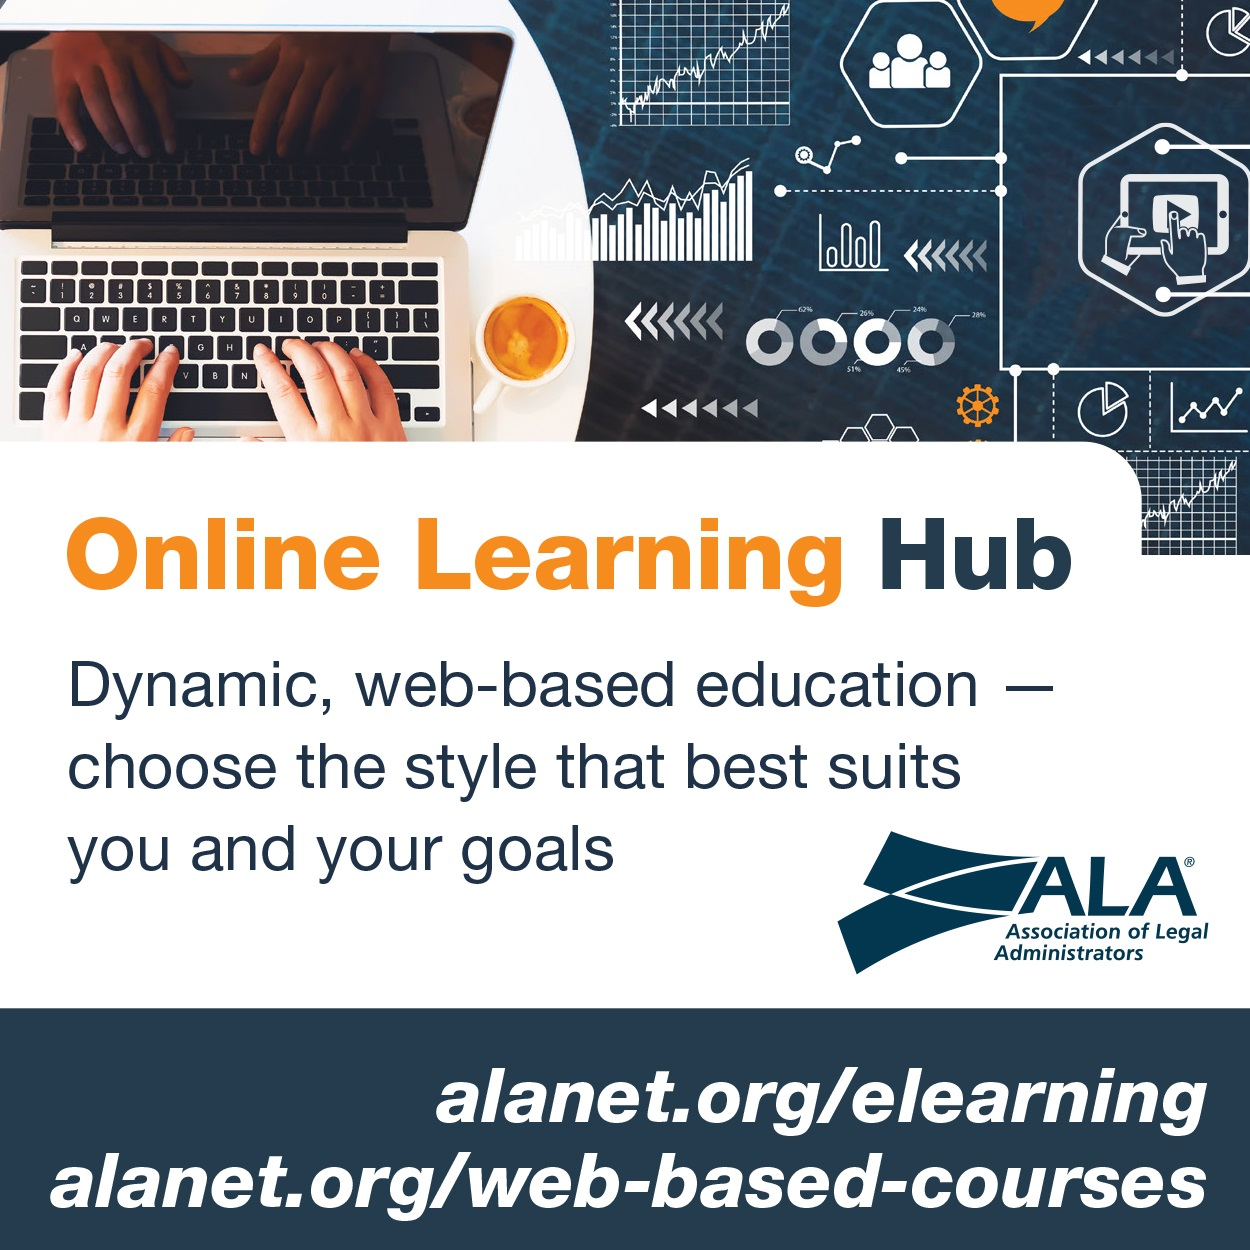 Online Learning Hub